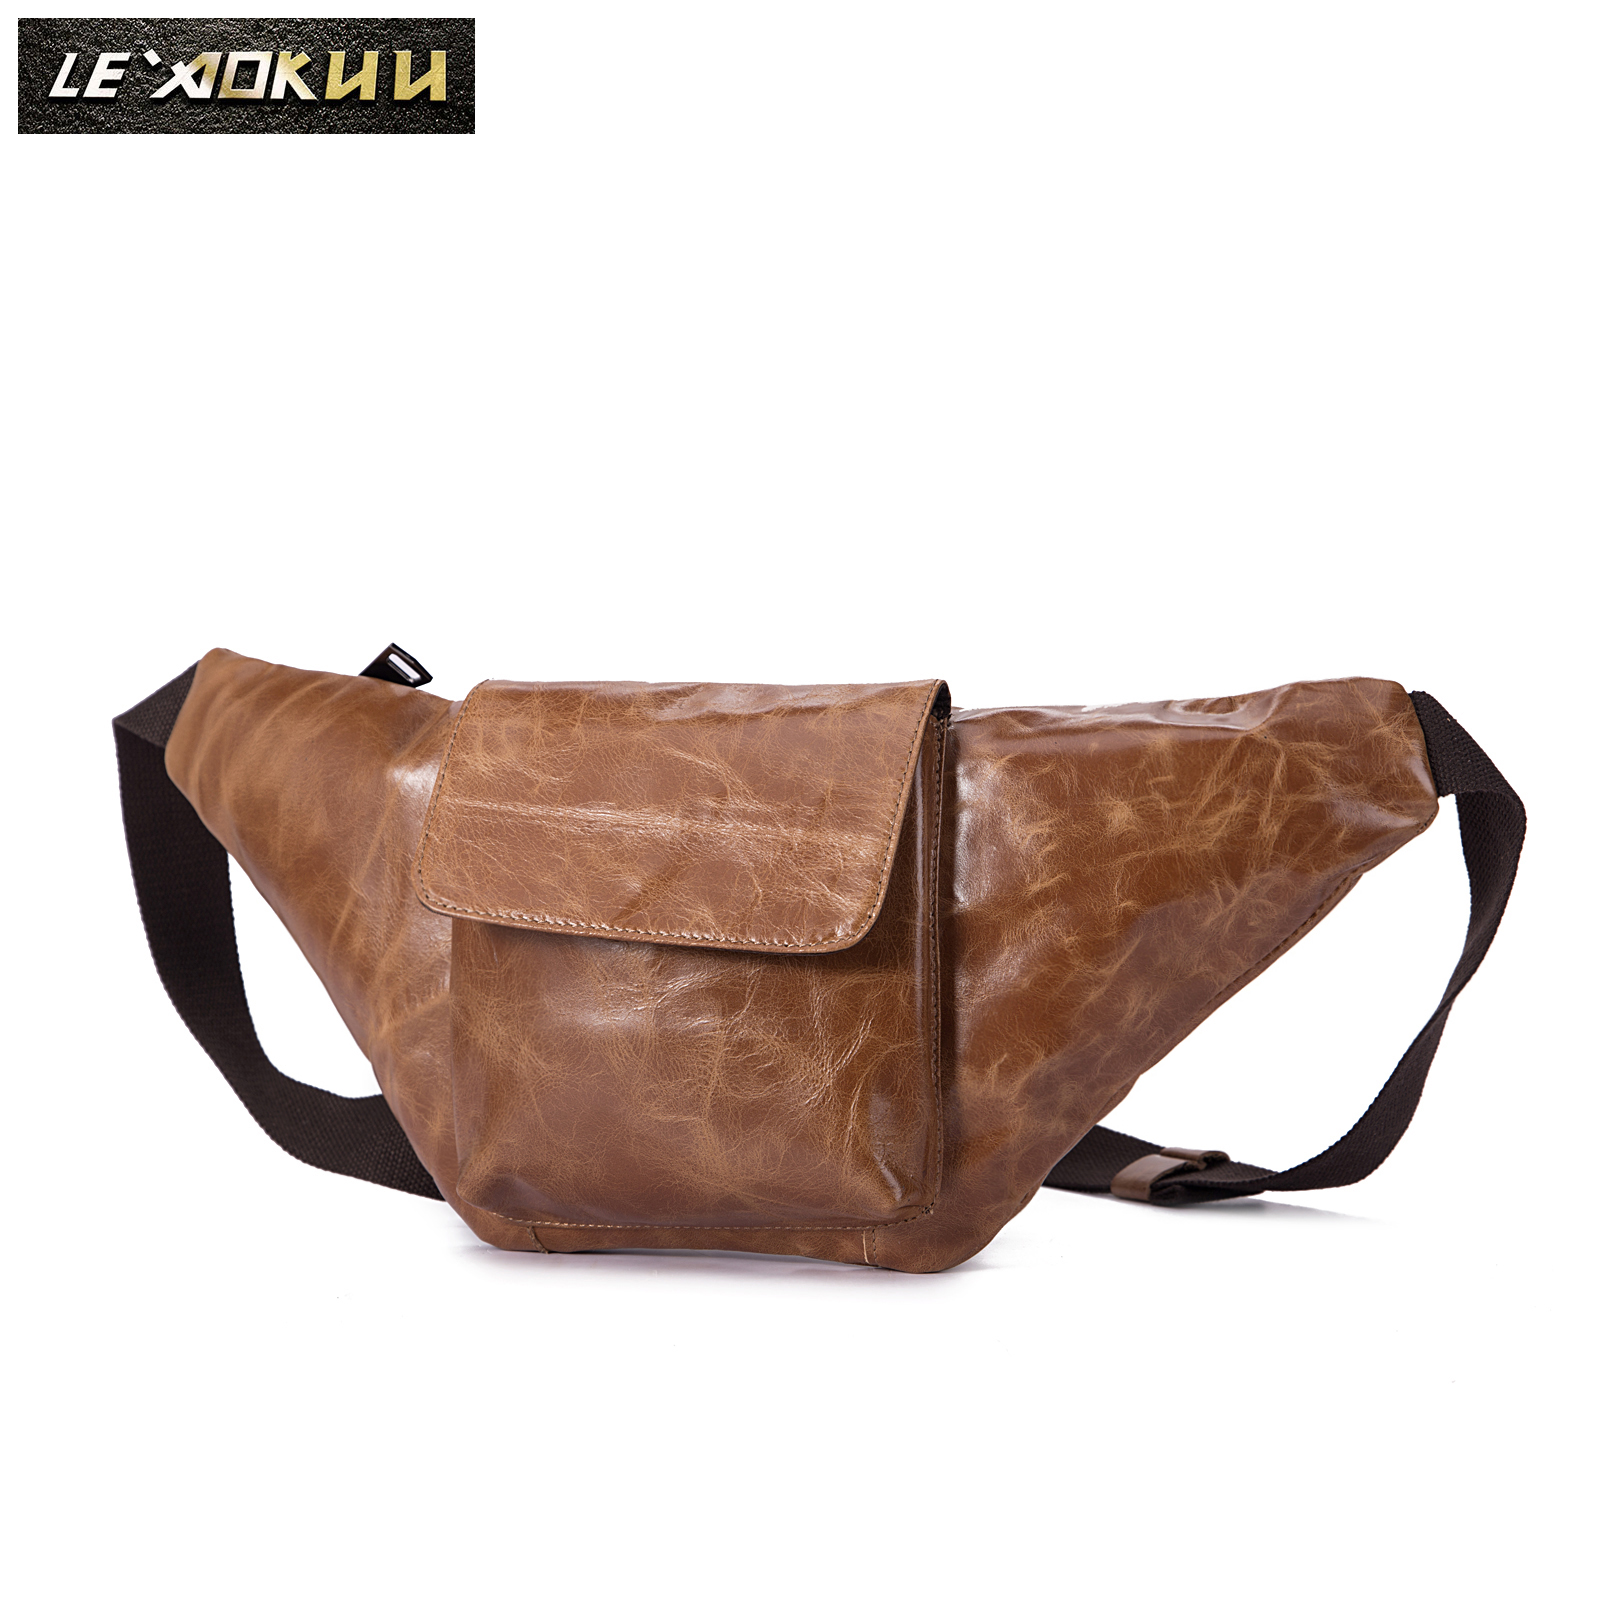 New Quality Leather Men Casual Fashion Travel Fanny Waist Belt Bag Chest Pack Sling Bag Design Phone Cigarette Case Male 2022